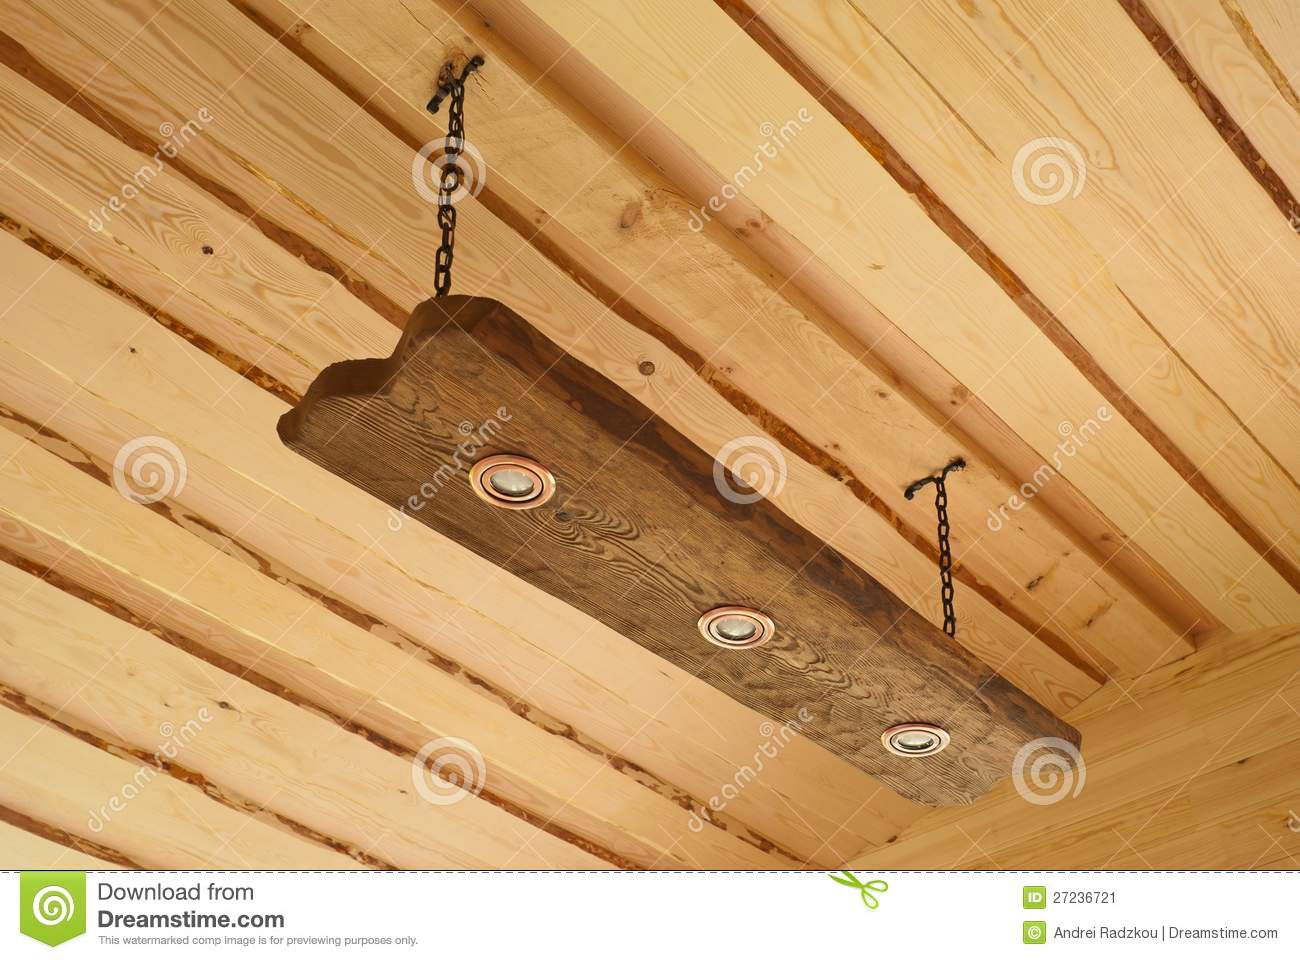 Suspended ceiling light in the form of an oak board with lights.